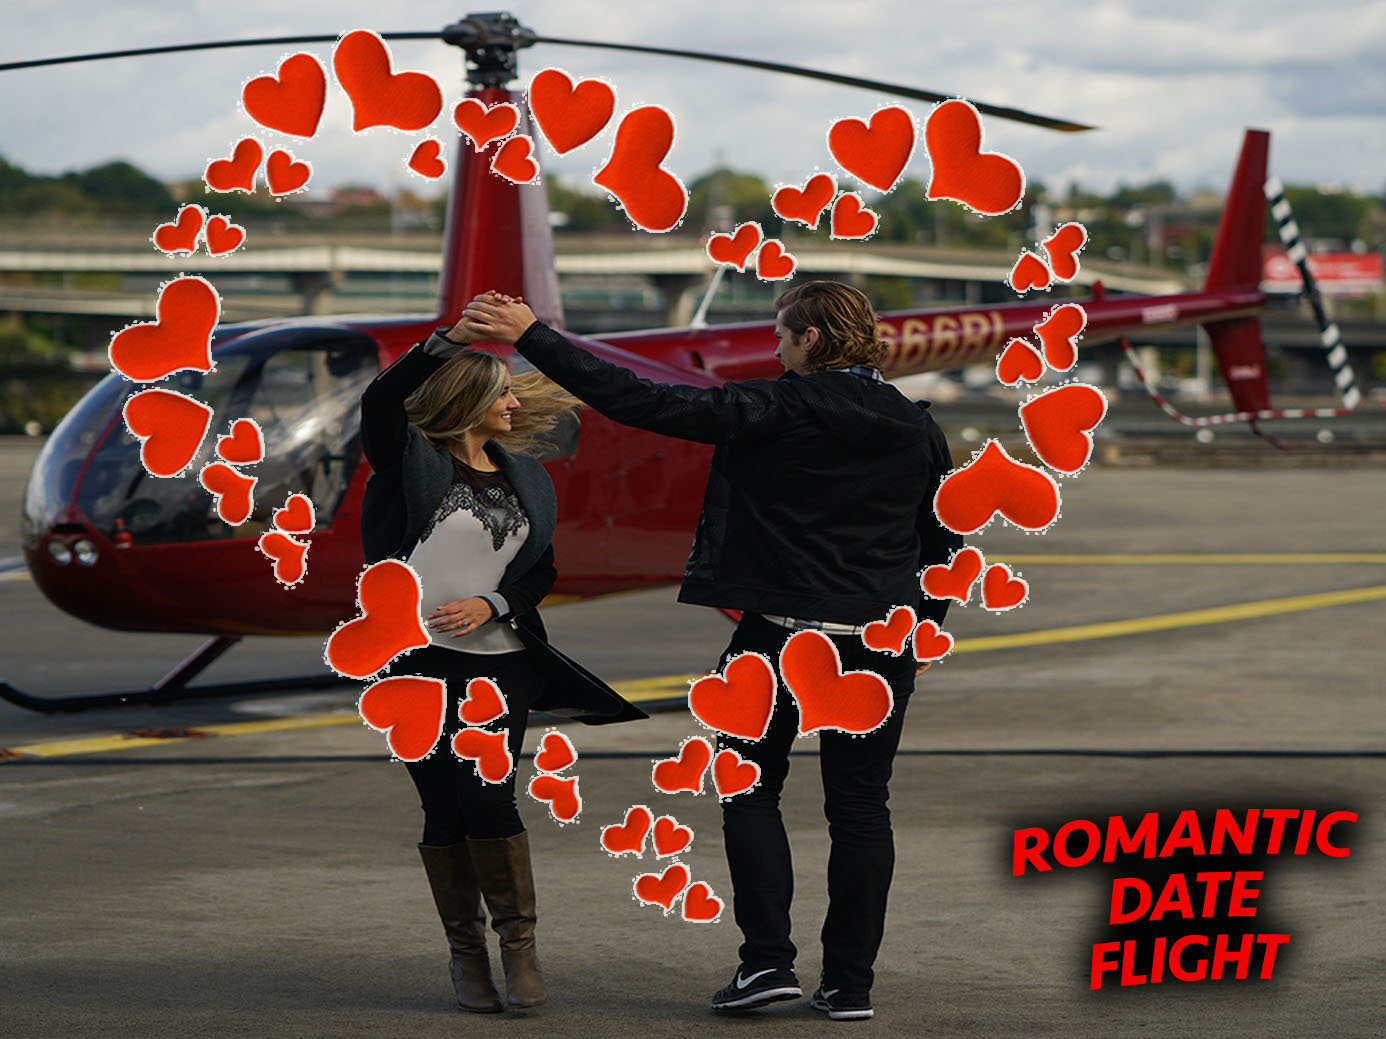 Portland Romantic Date Helicopter Tour